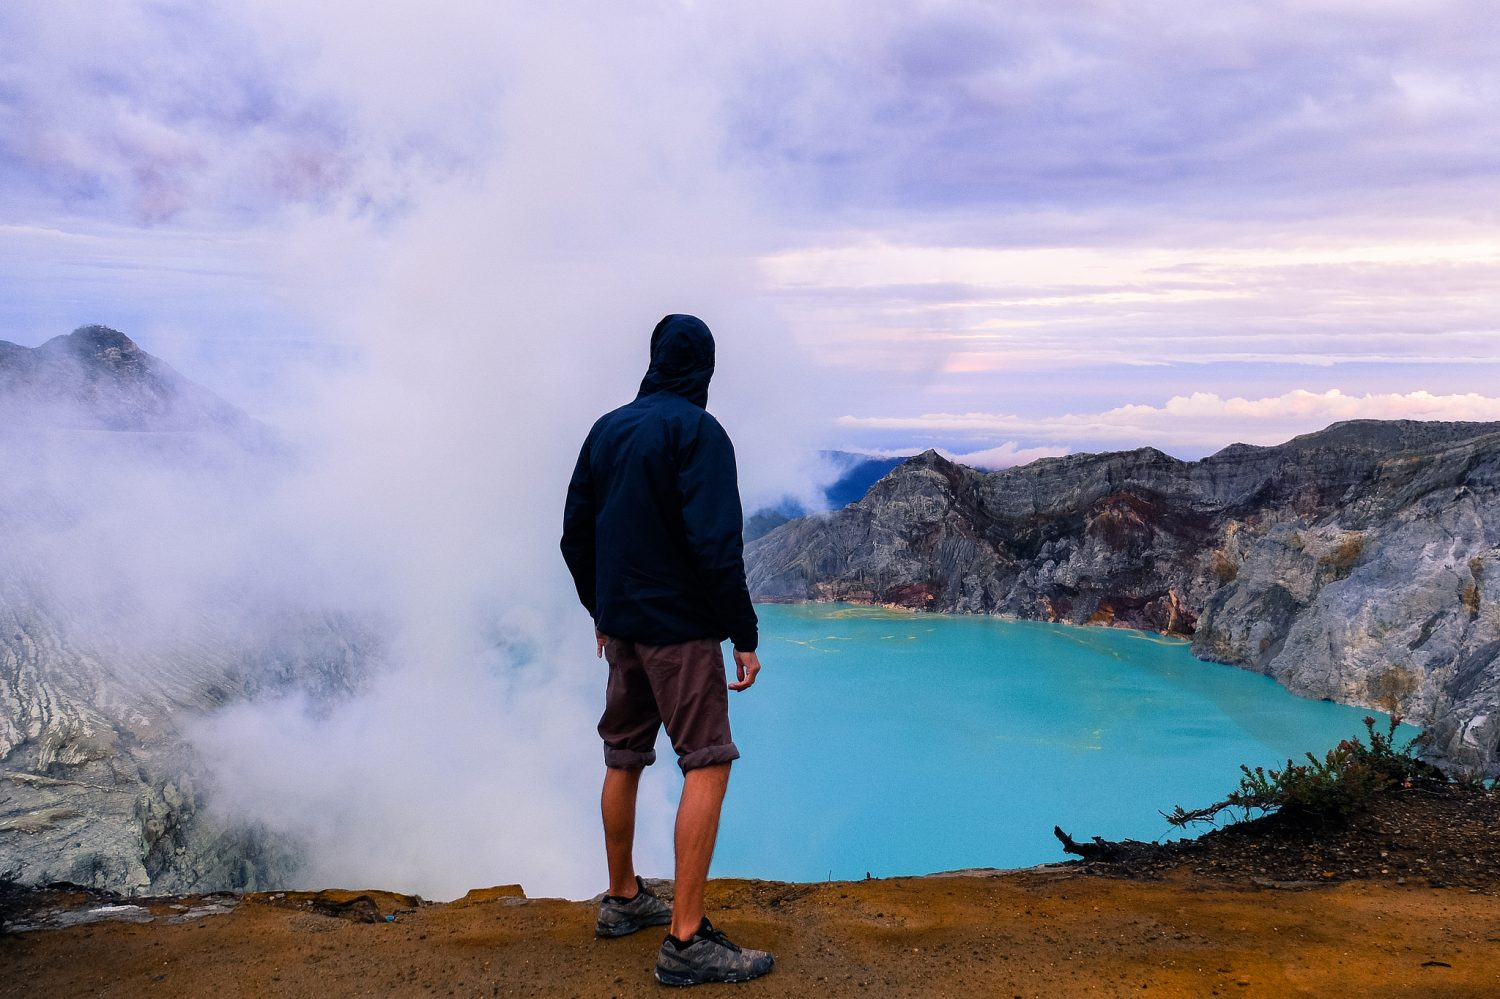 Sunrise at Ijen crater lake - Visa on Arrival in Indonesia